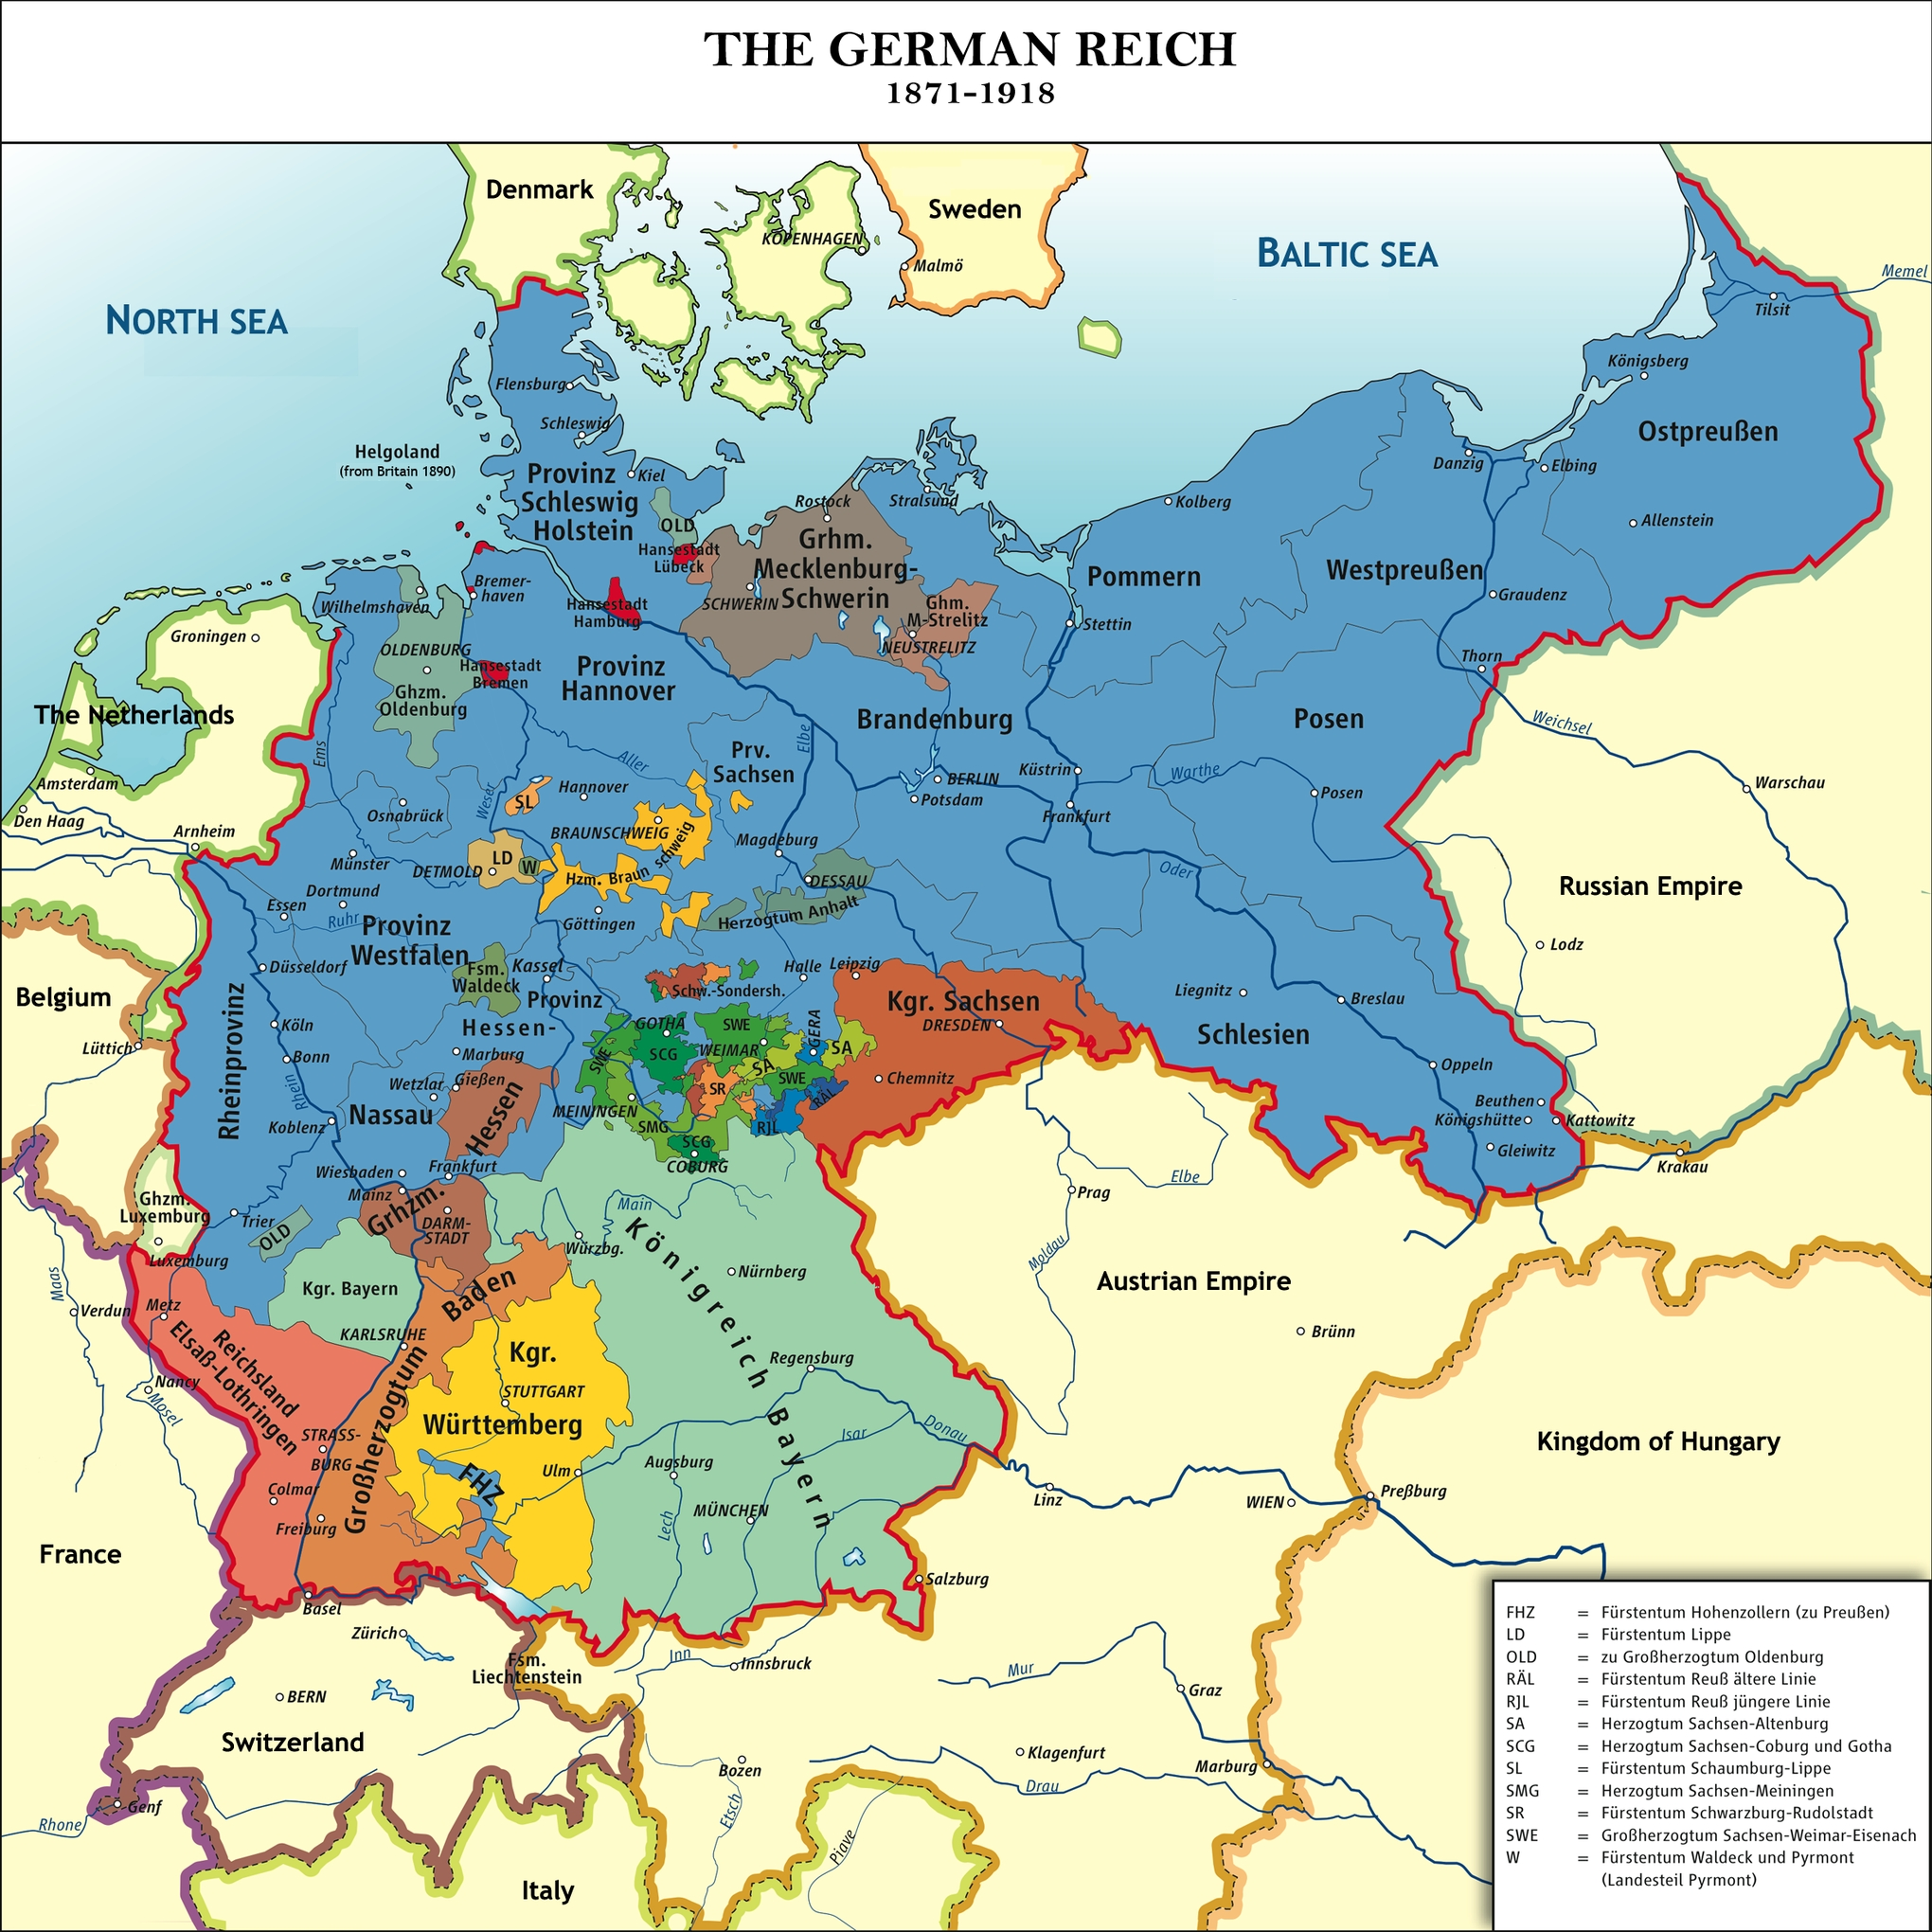 40 Maps That Explain World War I | Vox intended for Map Of France And Germany Border